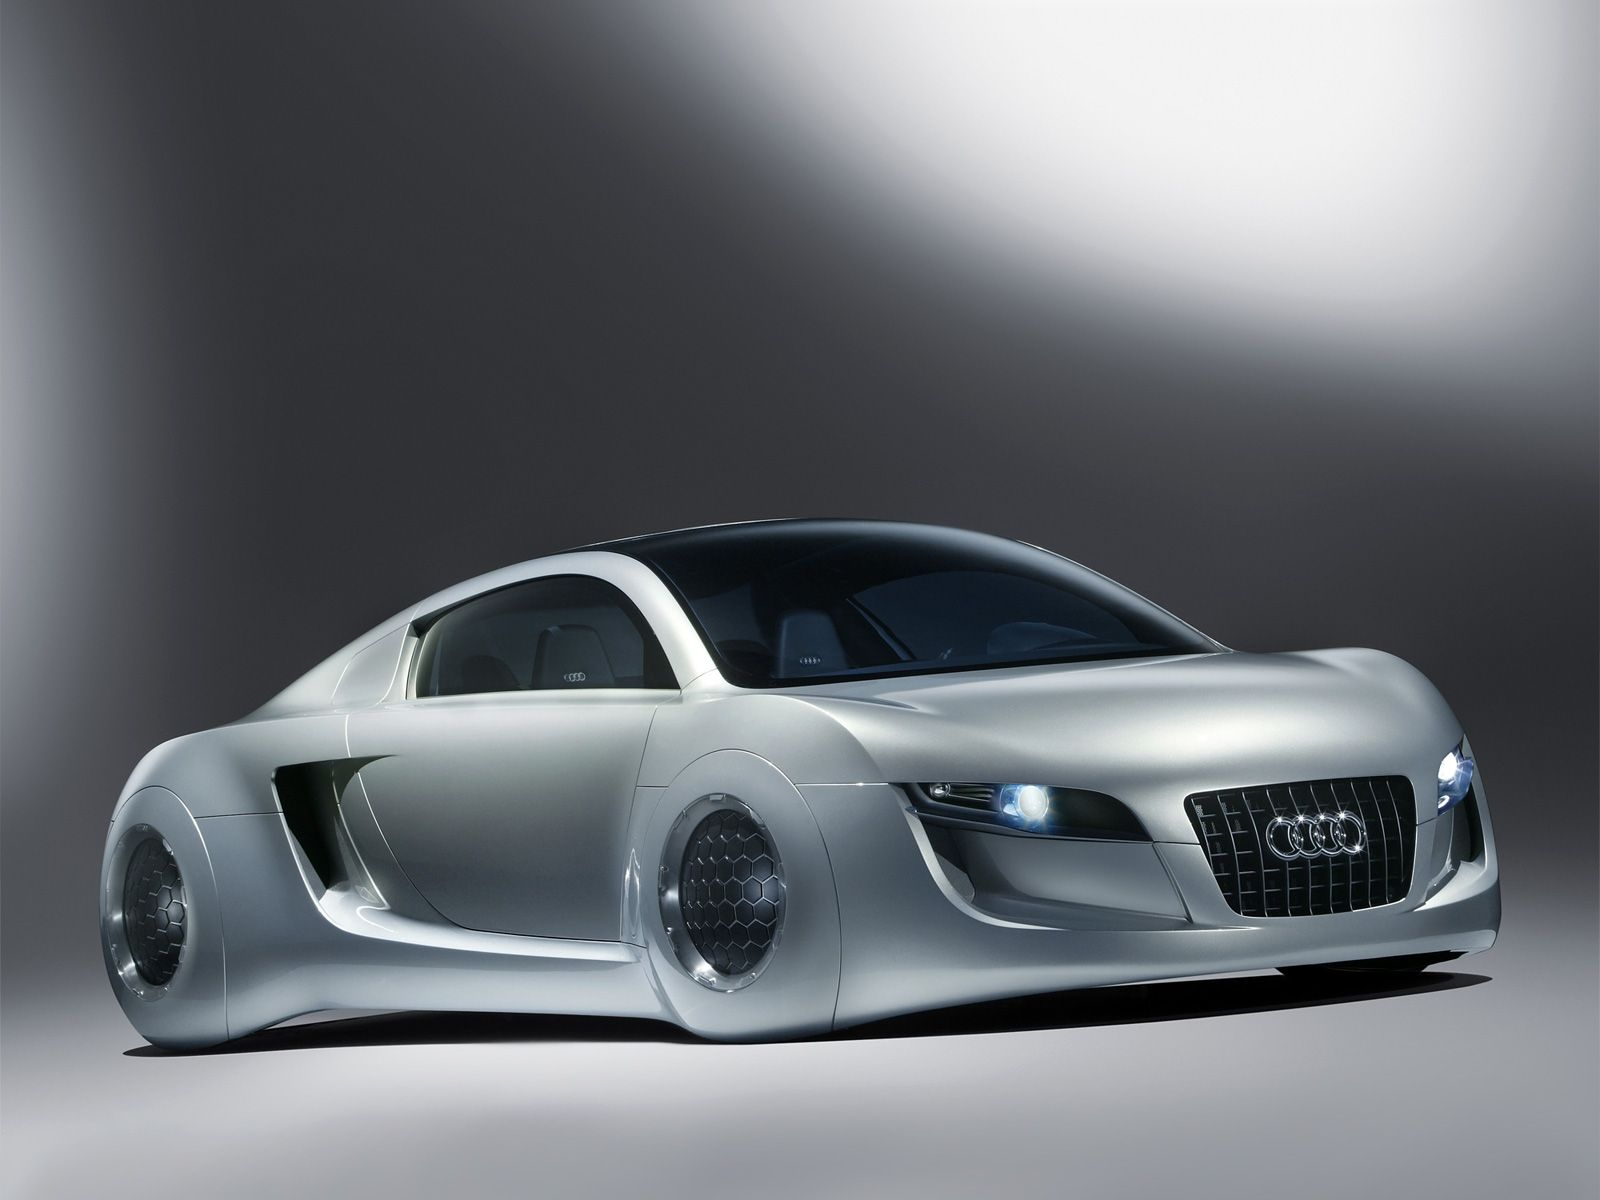 driving luxury photo new automobiles tech news mark audi is of autonomous the